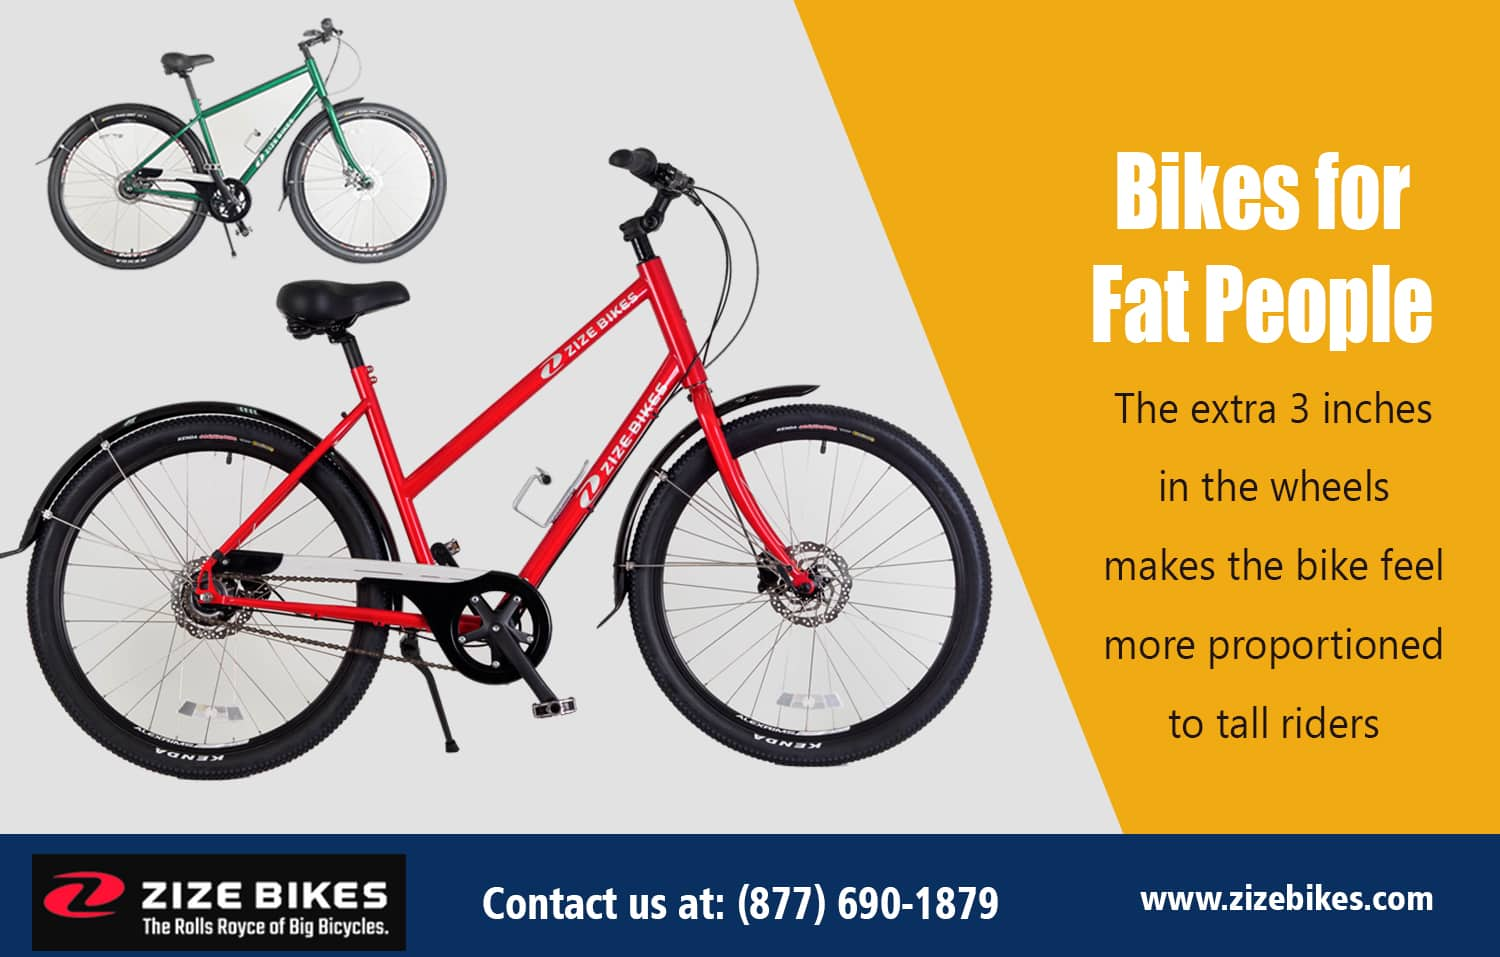 Bikes for Fat People